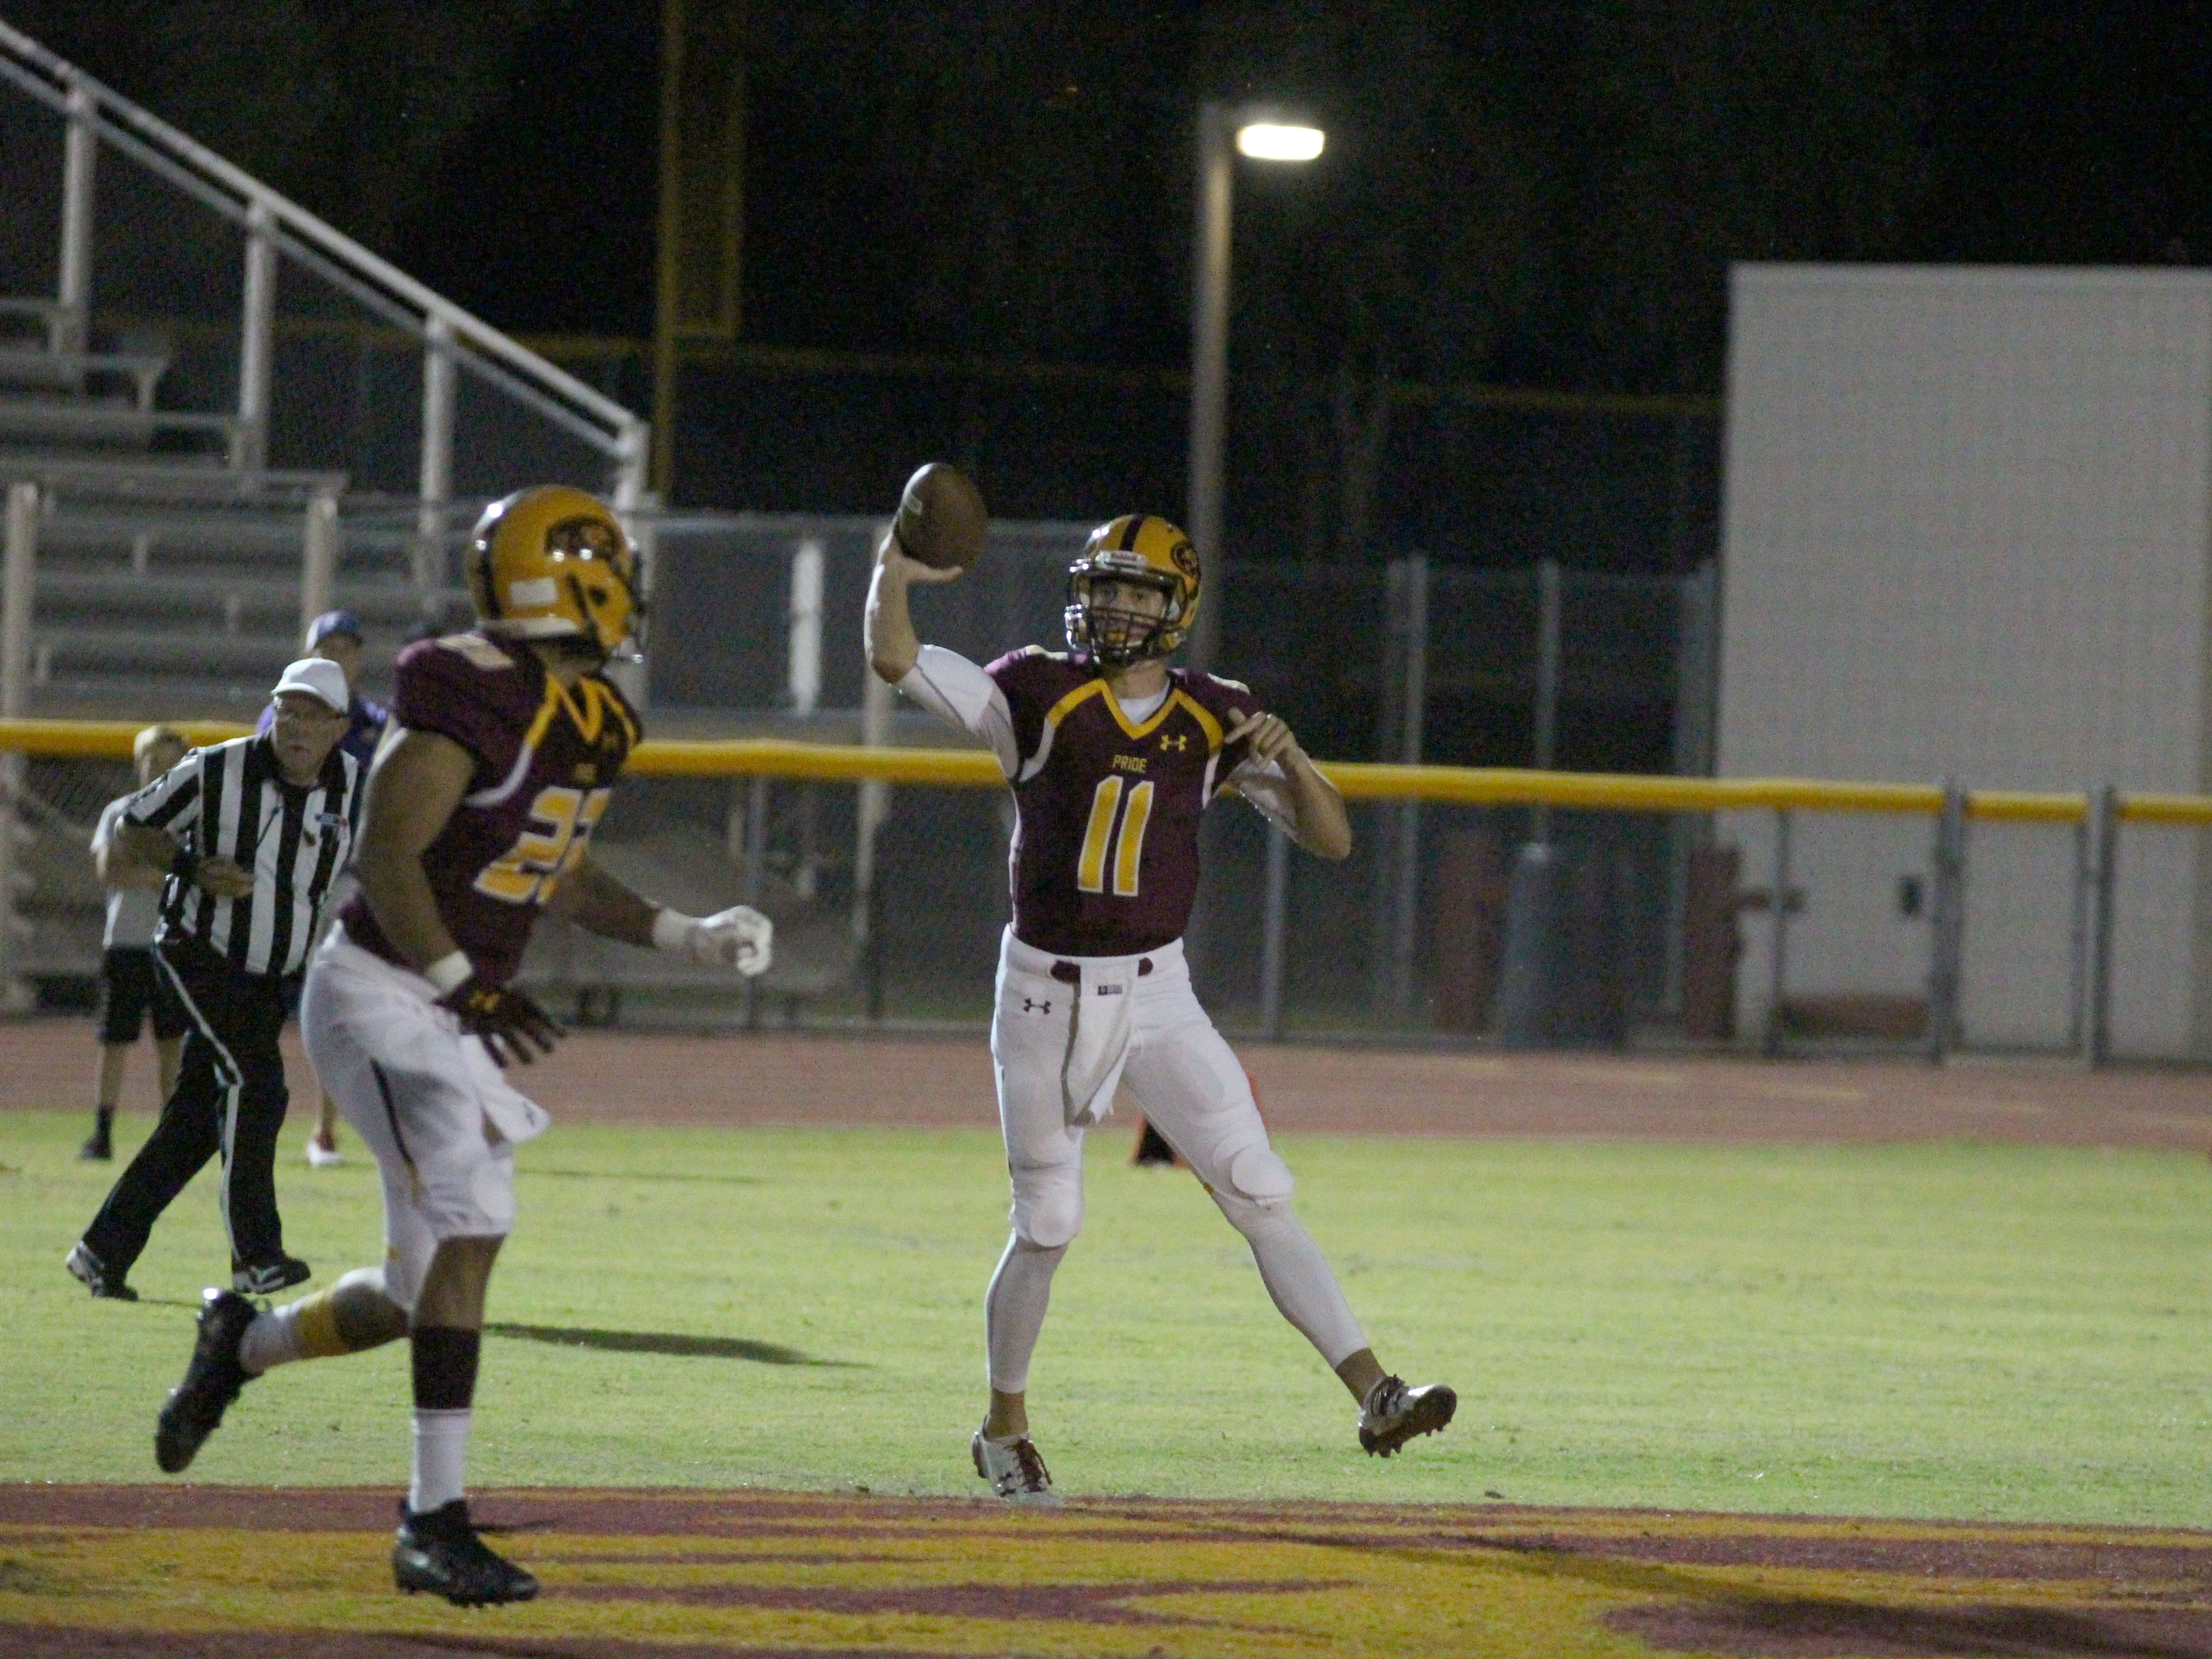 Mountain Pointe's Nick Wallerstedt passes it to Jerrick Dickson against Queen Creek on Friday night at Mountain Pointe High School on Sept. 21, 2018.